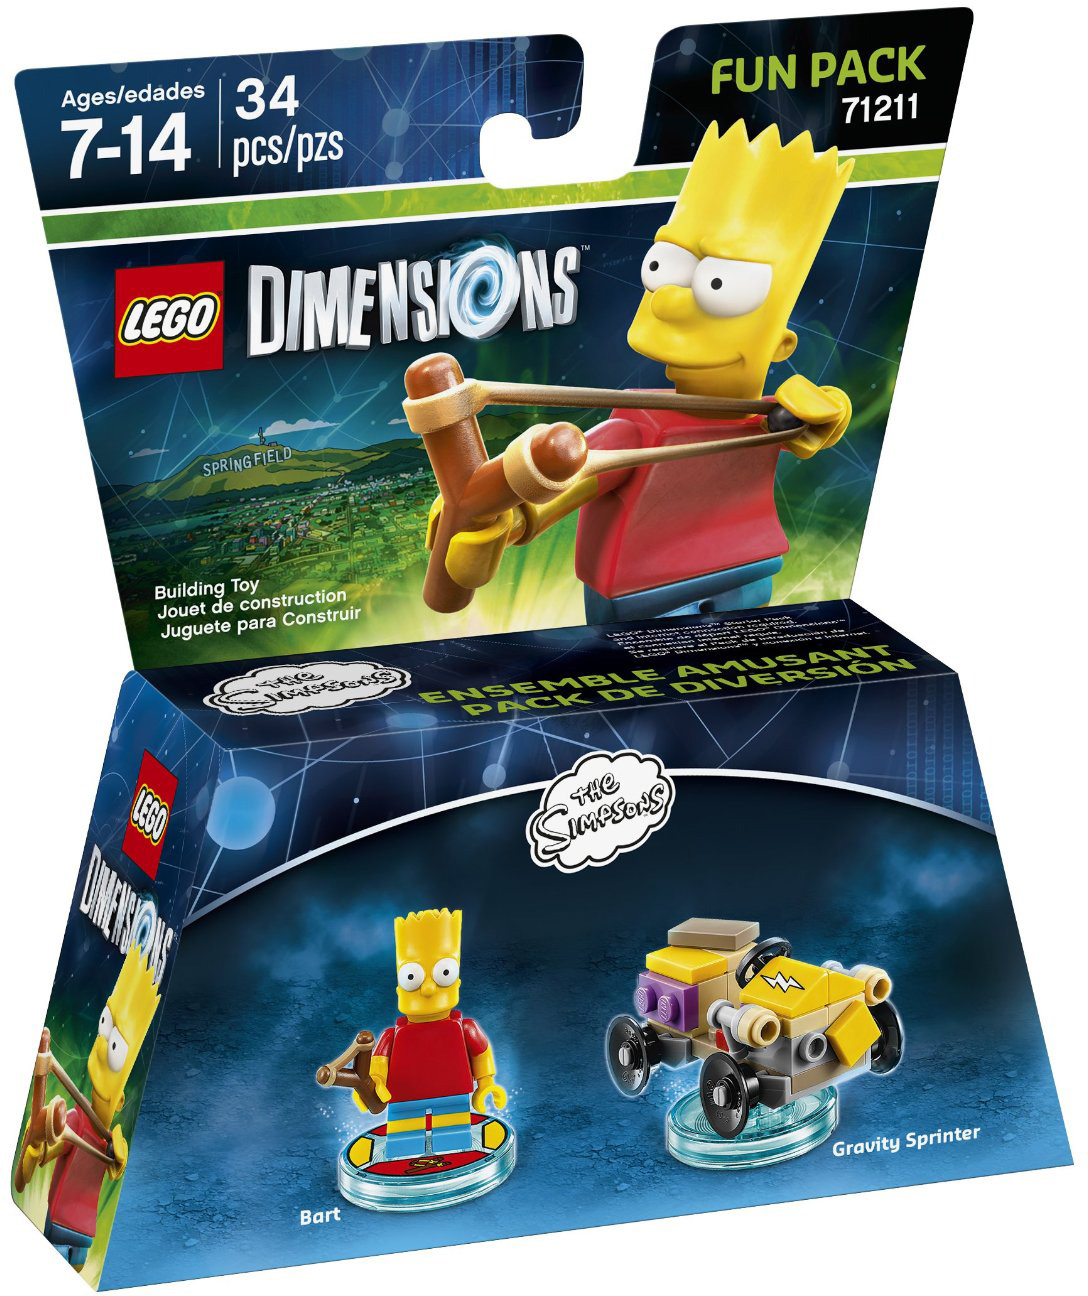 LEGO Dimensions The Simpsons: Bart Fun Pack